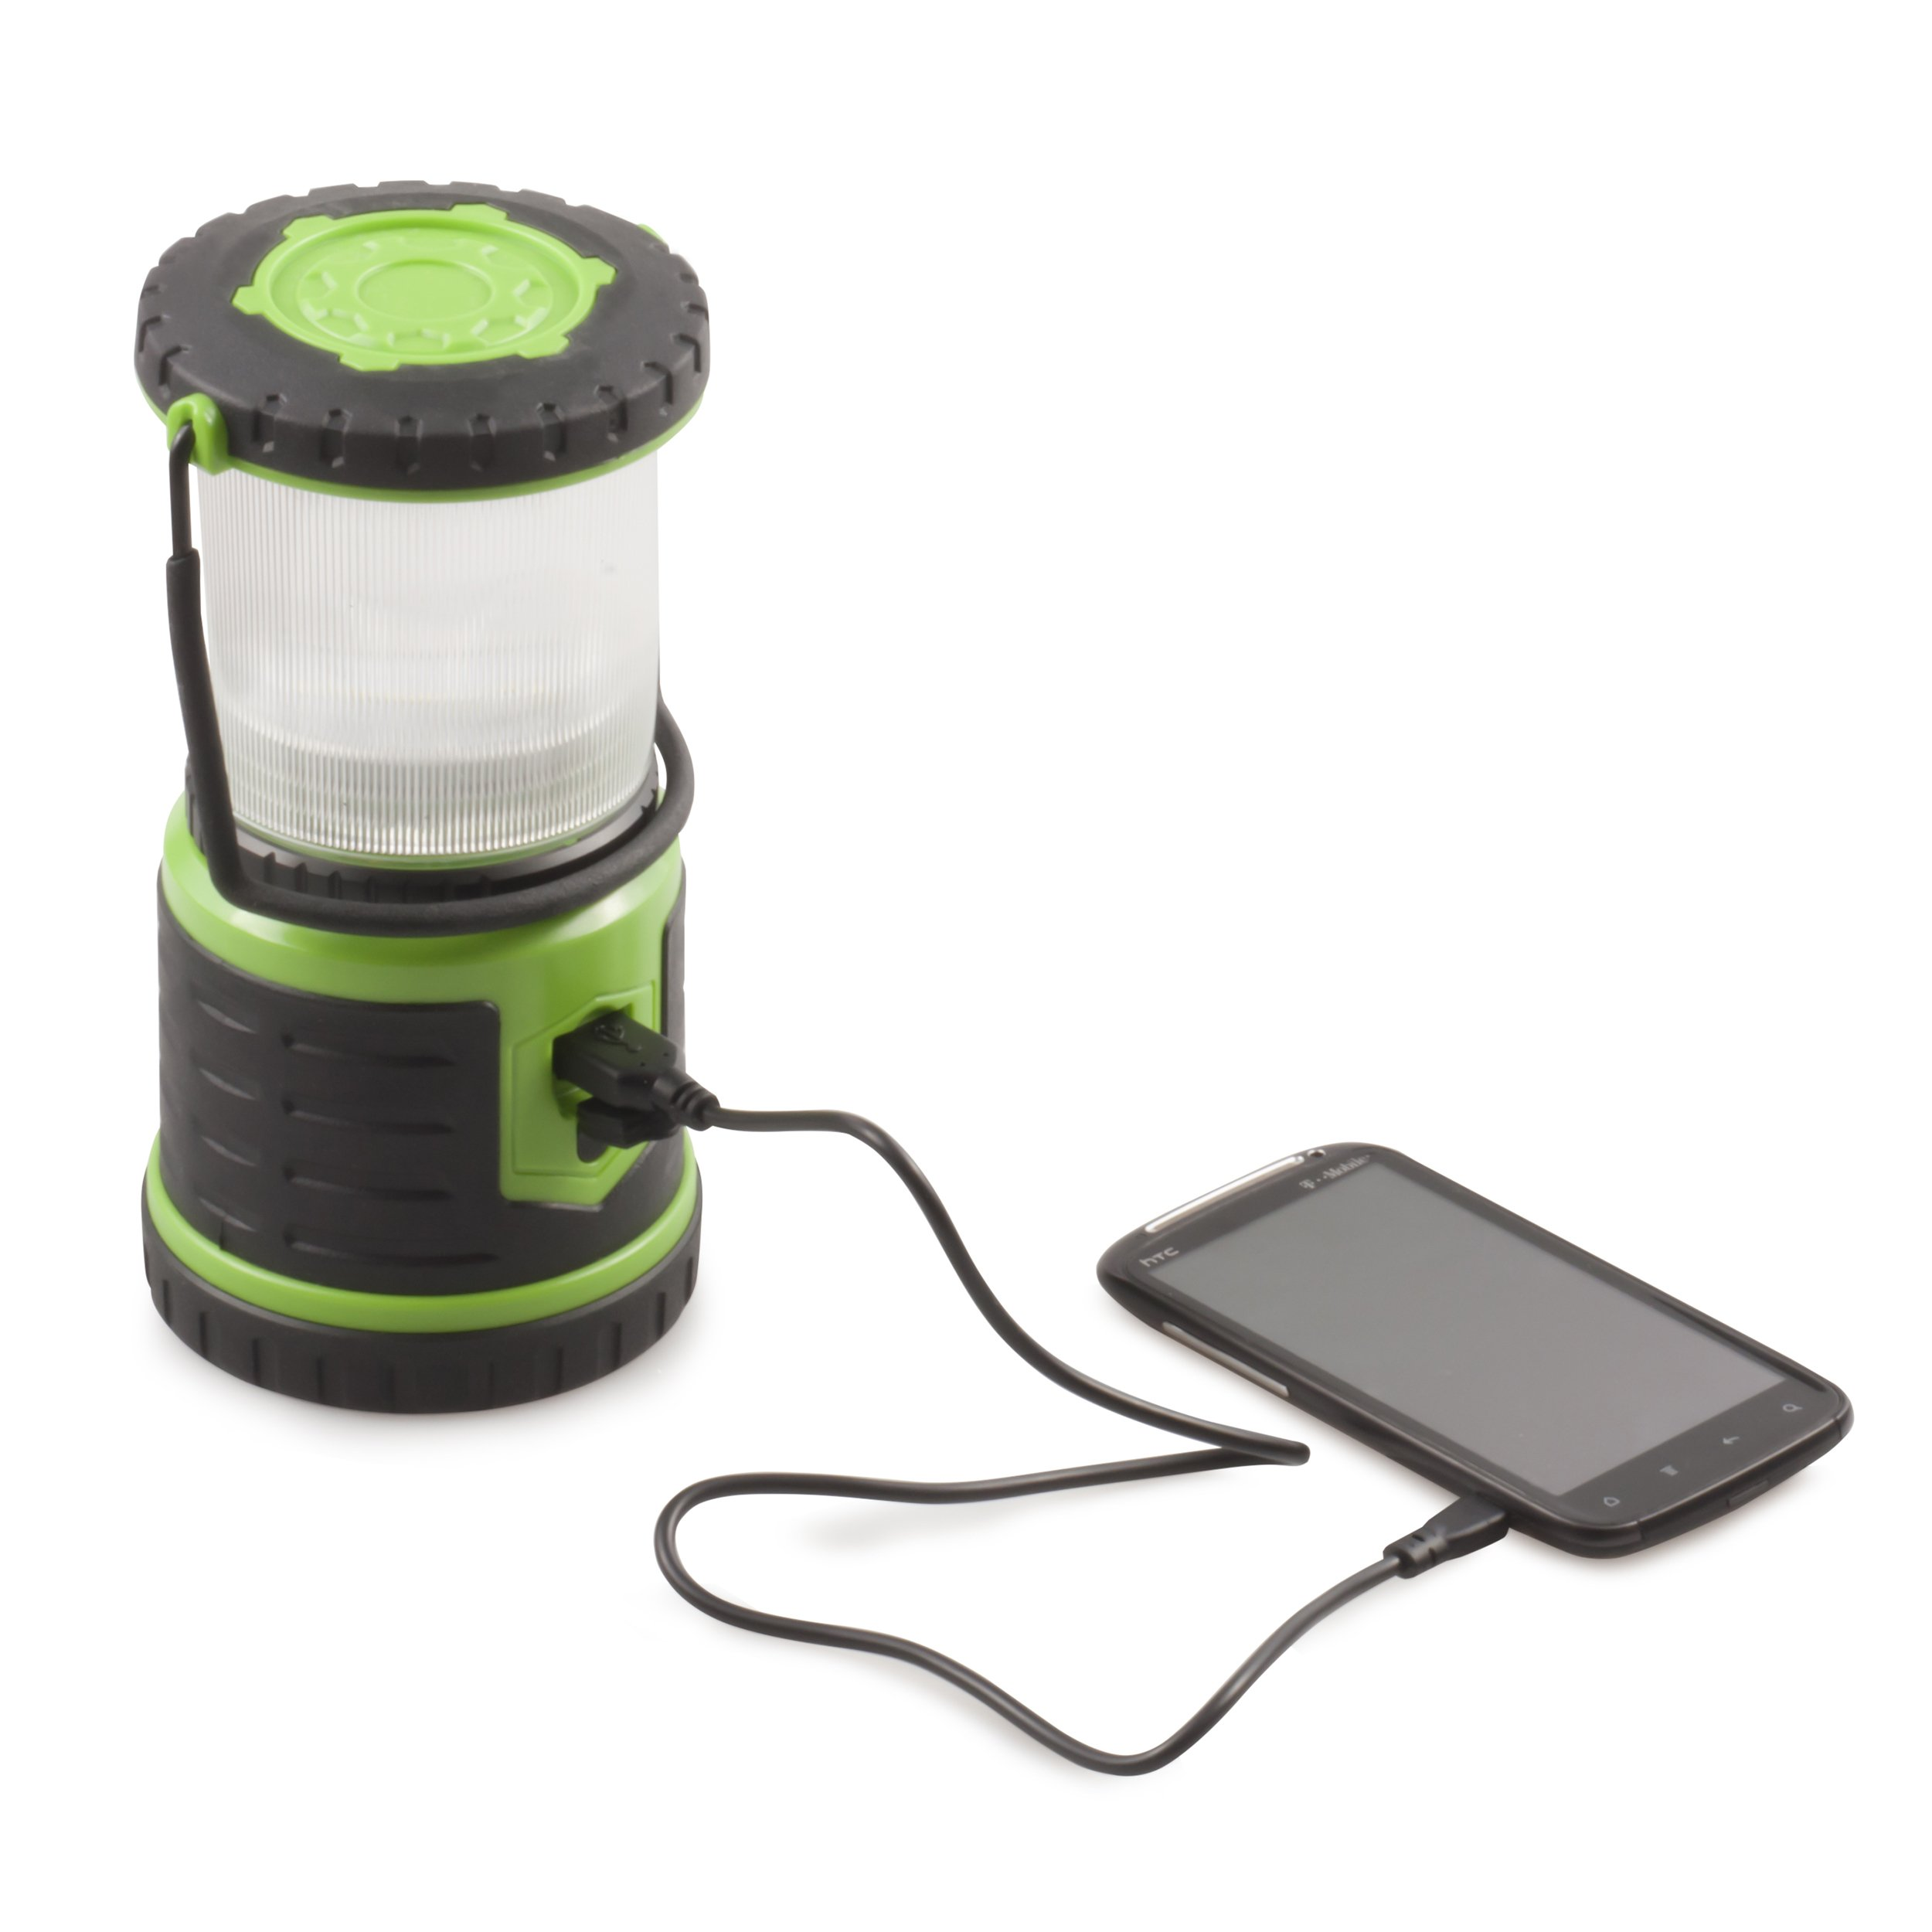 Blazin' Bison Brightest Rechargeable LED Lantern | 400 Hour Runtime | Phone Charger | Hurricane, Emergency, Storm (400 Lumen, Green) by Blazin' Bison (Image #3)